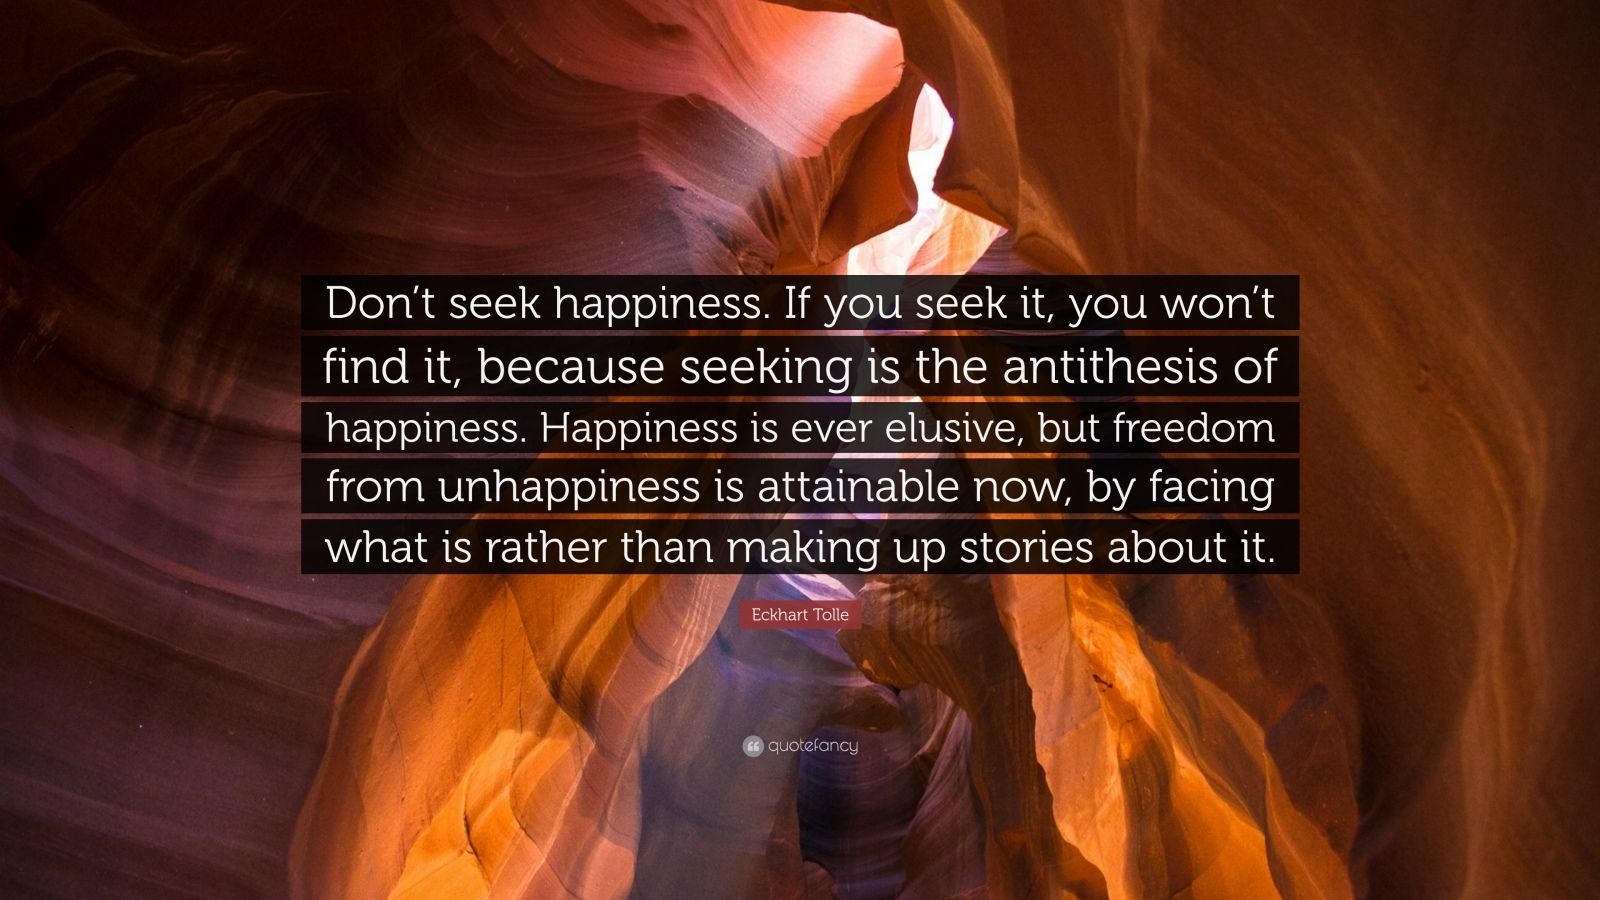 """Eckhart Tolle Quote: """"Don't seek happiness. If you seek it, you won't find it, because seeking is the antithesis of happiness. Happiness is ever elusive, but freedom from unhappiness is attainable now, by facing what is rather than making up stories about it."""""""